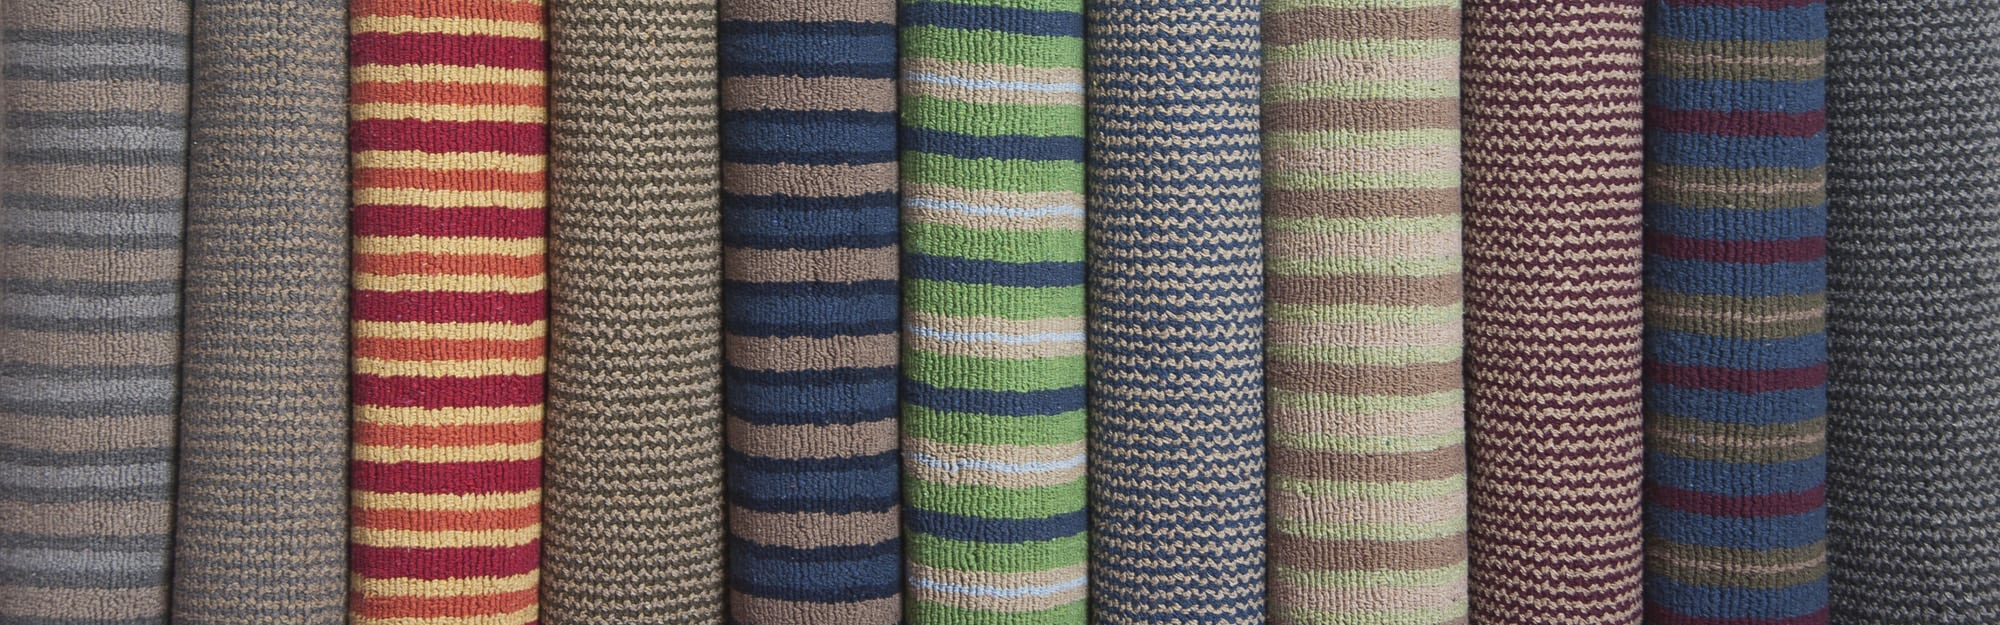 eco cotton loom hooked rugs rolled